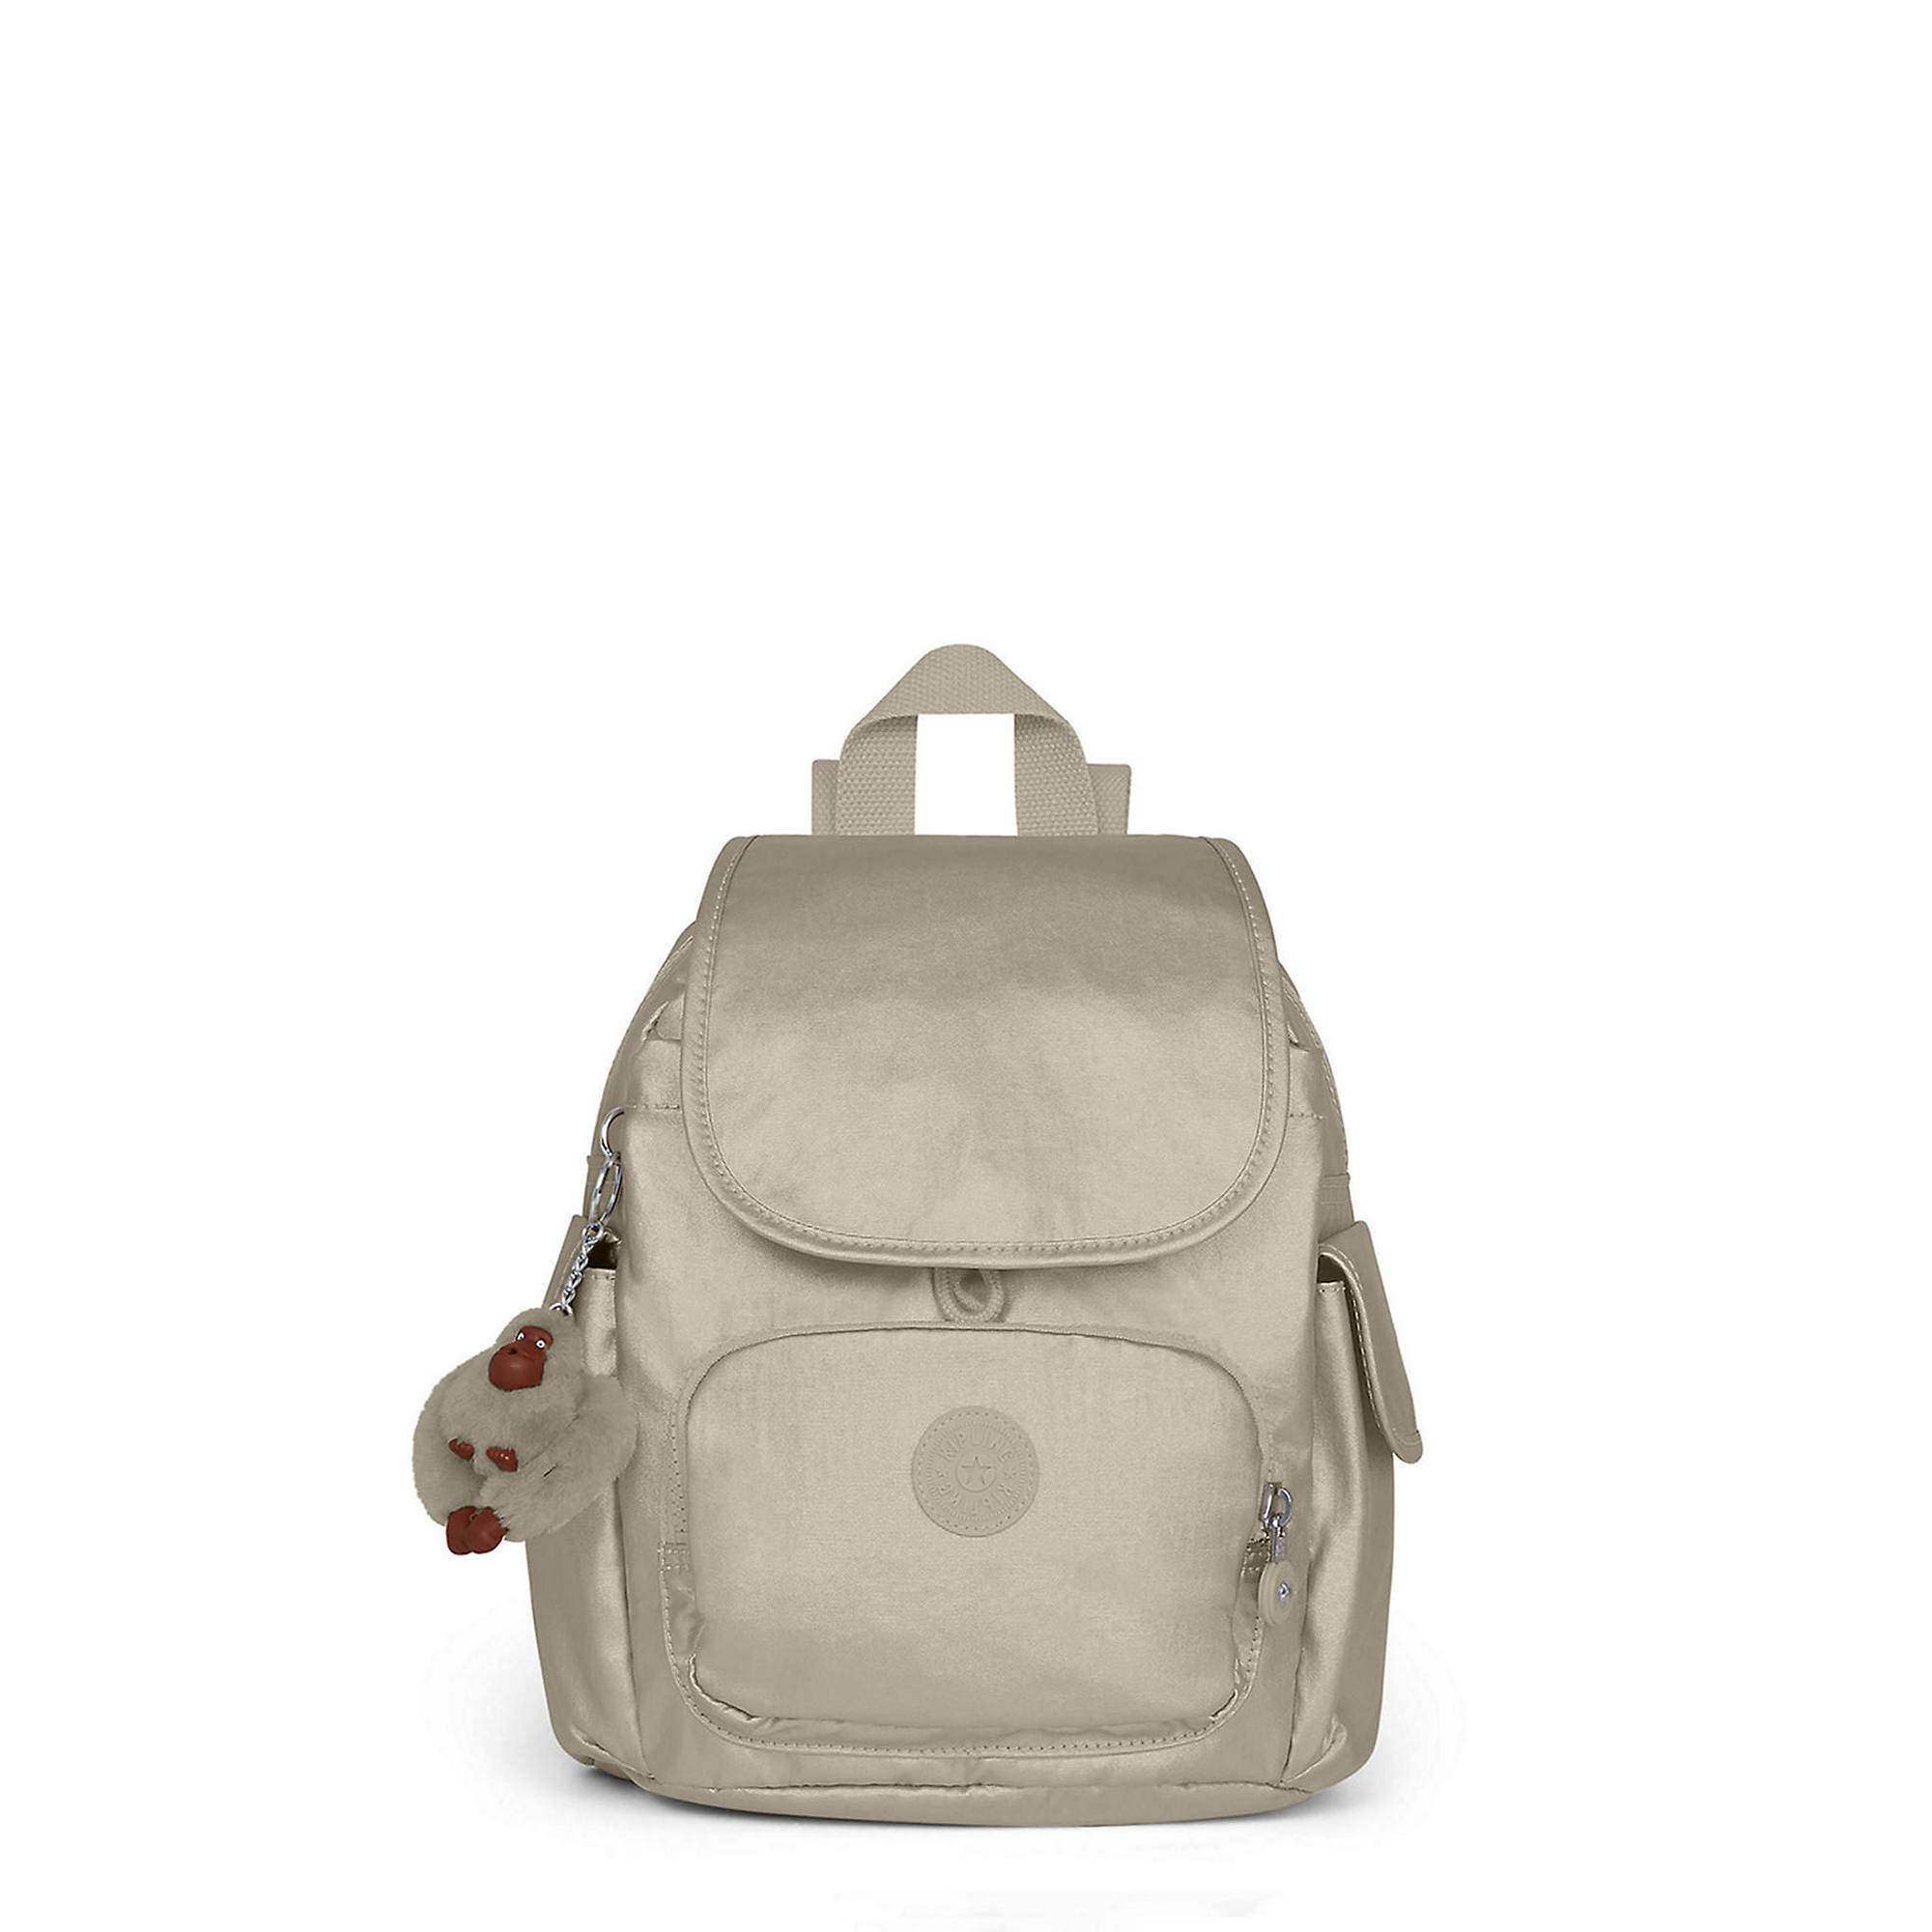 d13090f163fb City Pack Extra Small Metallic Backpack,Metallic Pewter,large